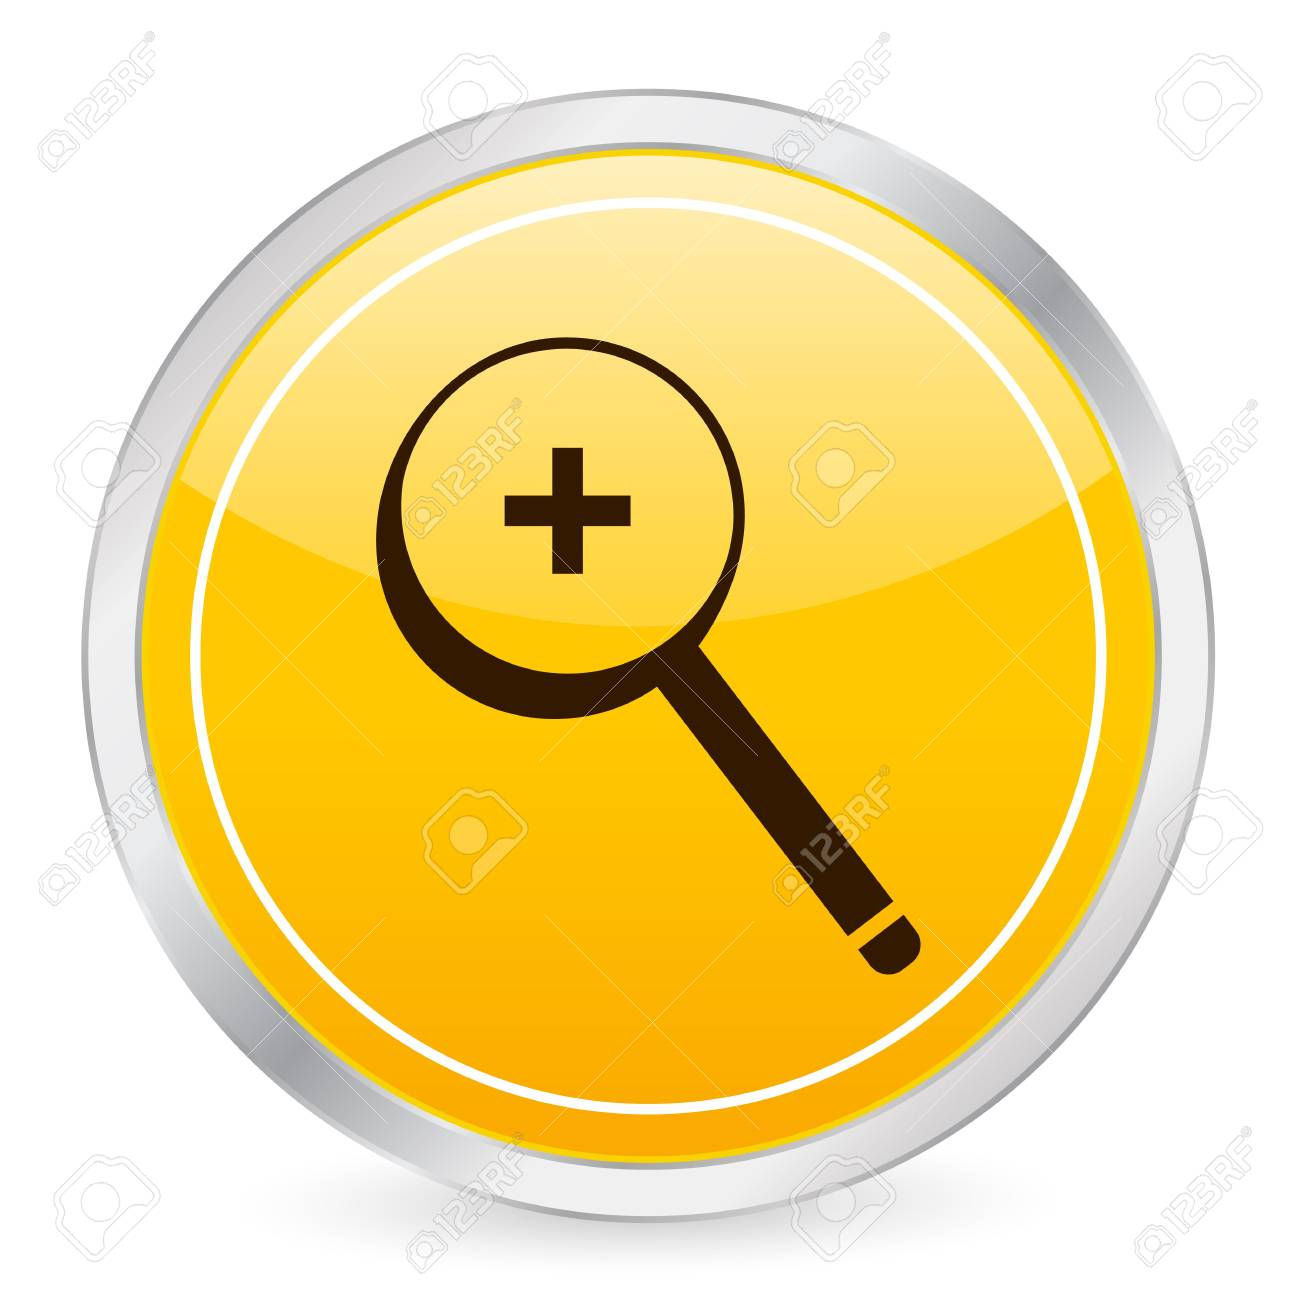 Zoom in yellow circle icon Stock Photo - 3606312